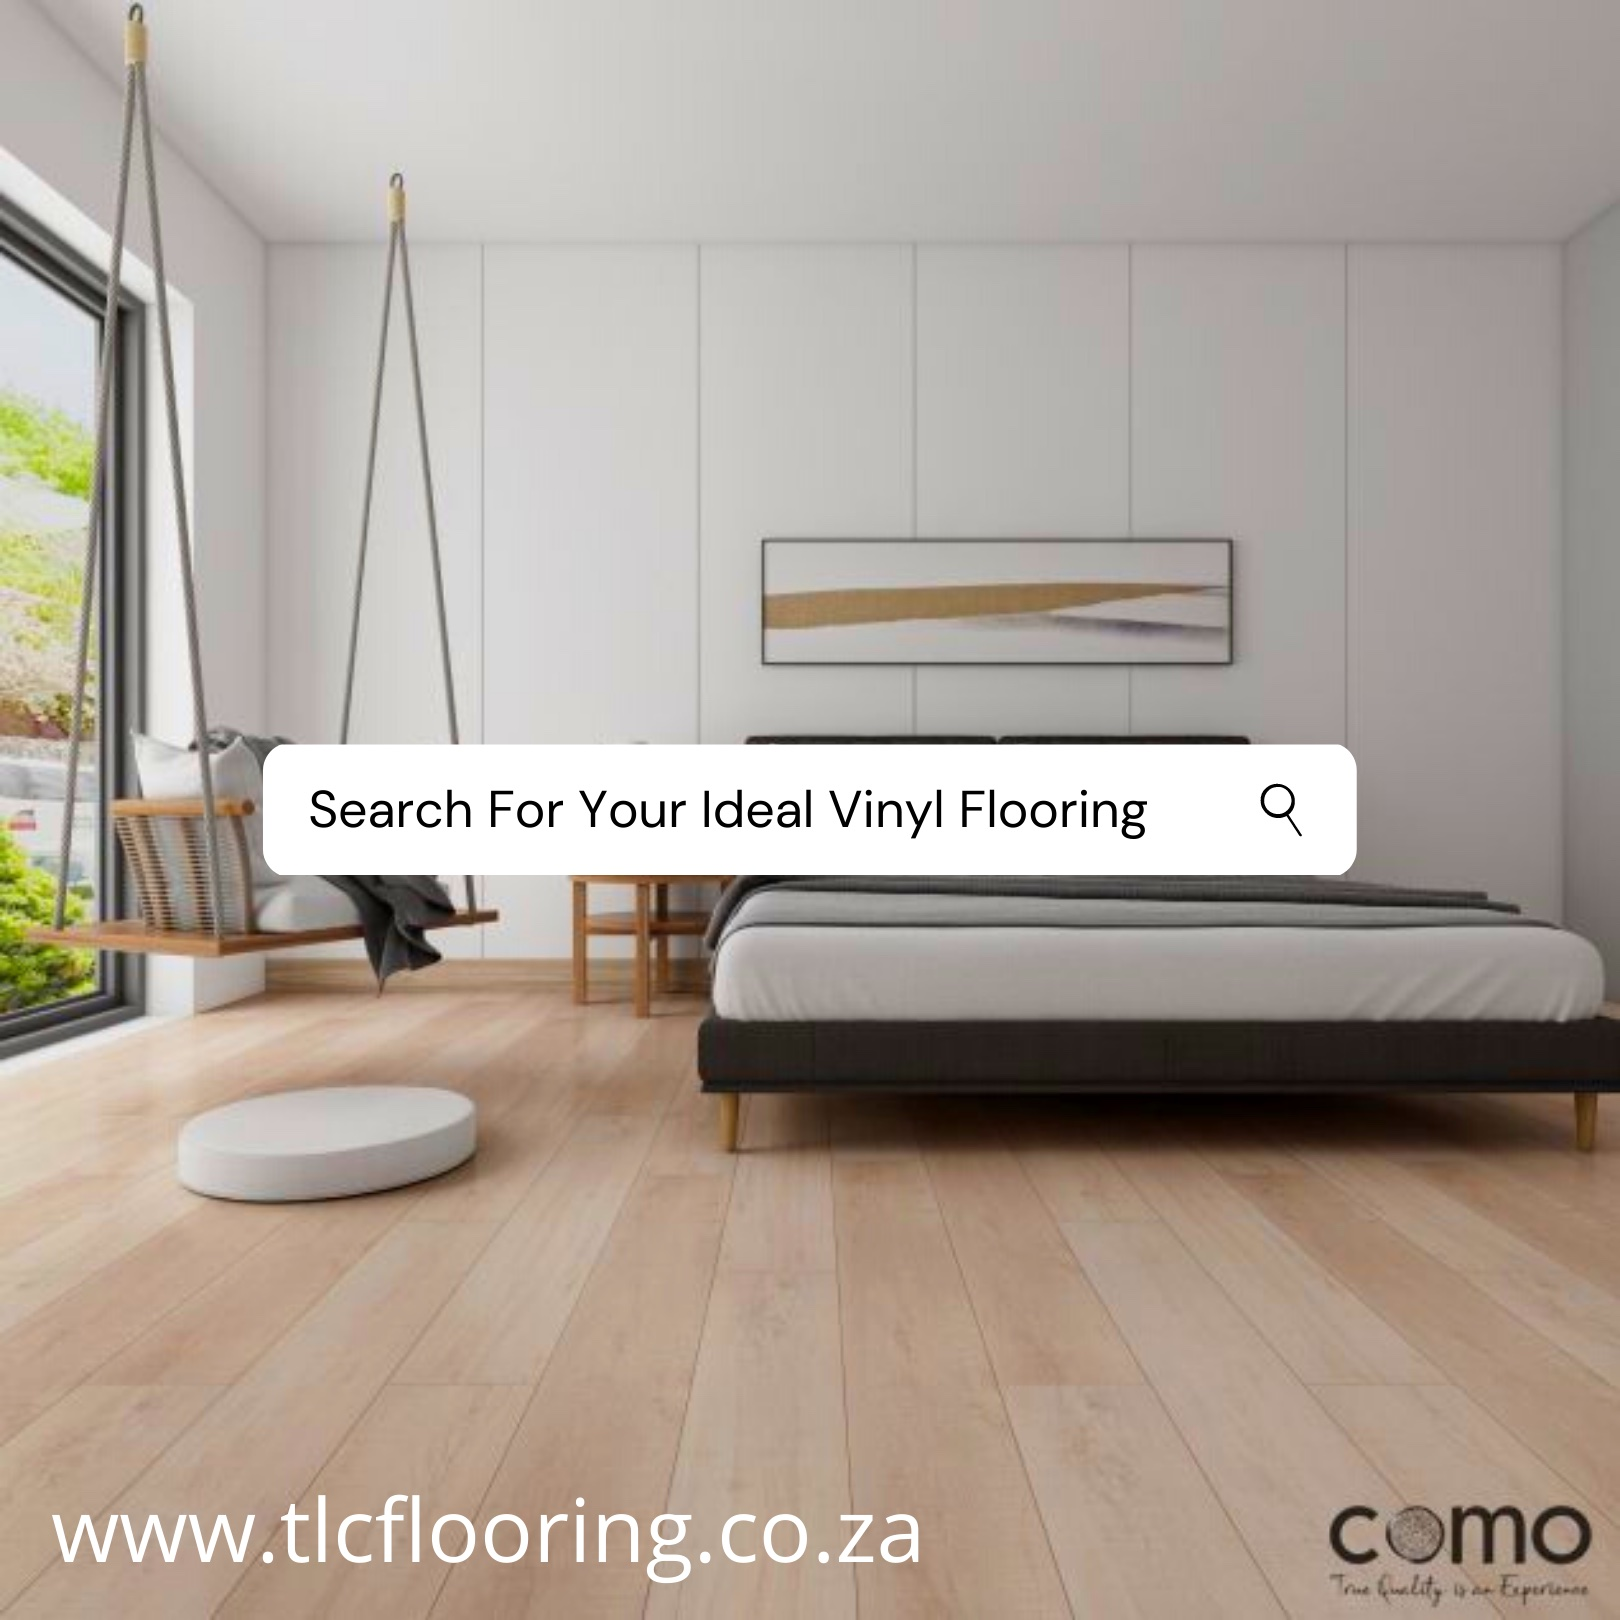 Search For Your Ideal Flooring